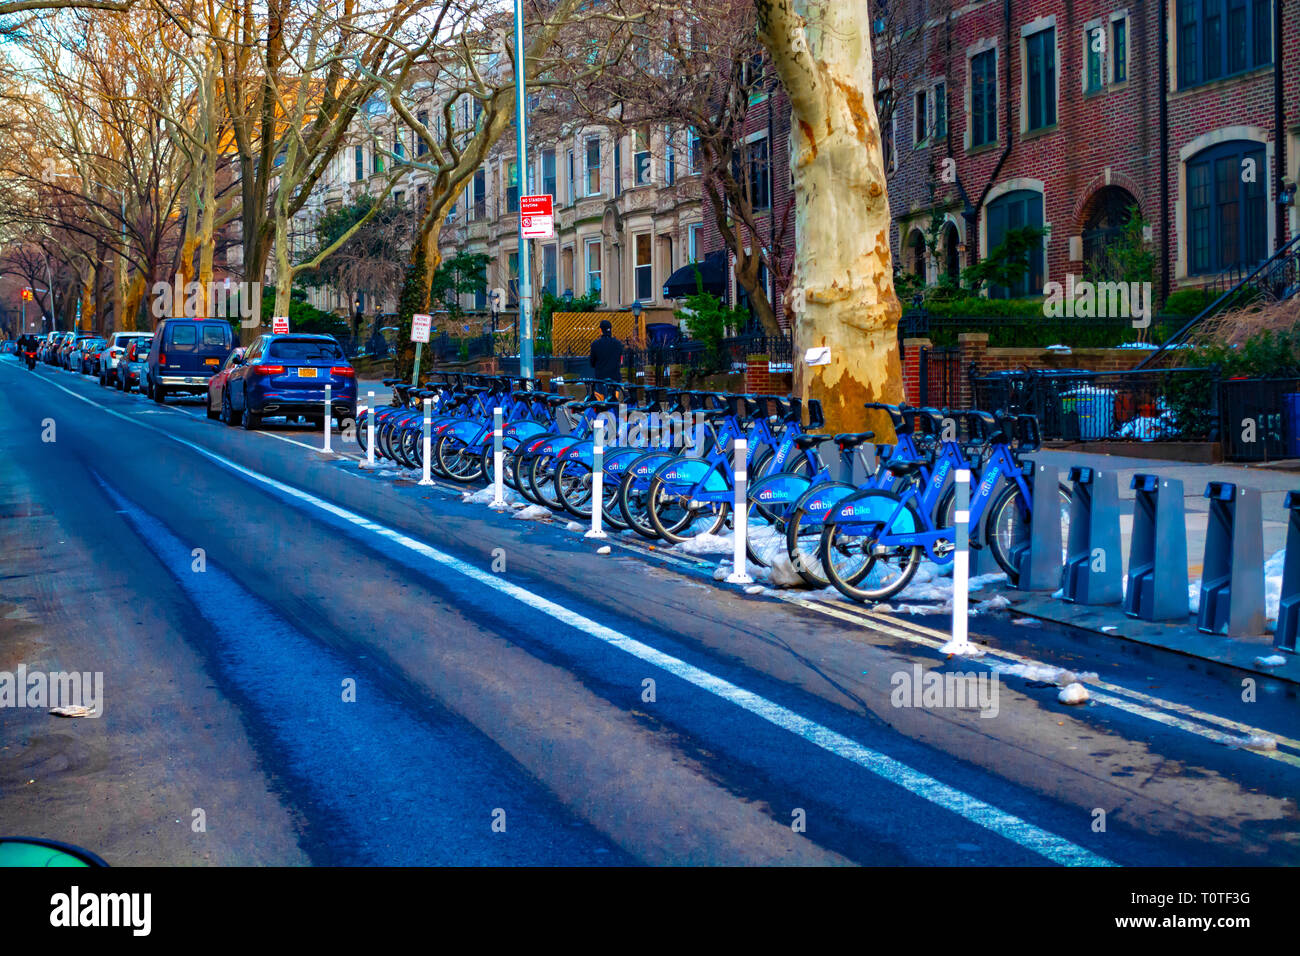 Citi bike Bicycles parked at Park Slope street. - Stock Image